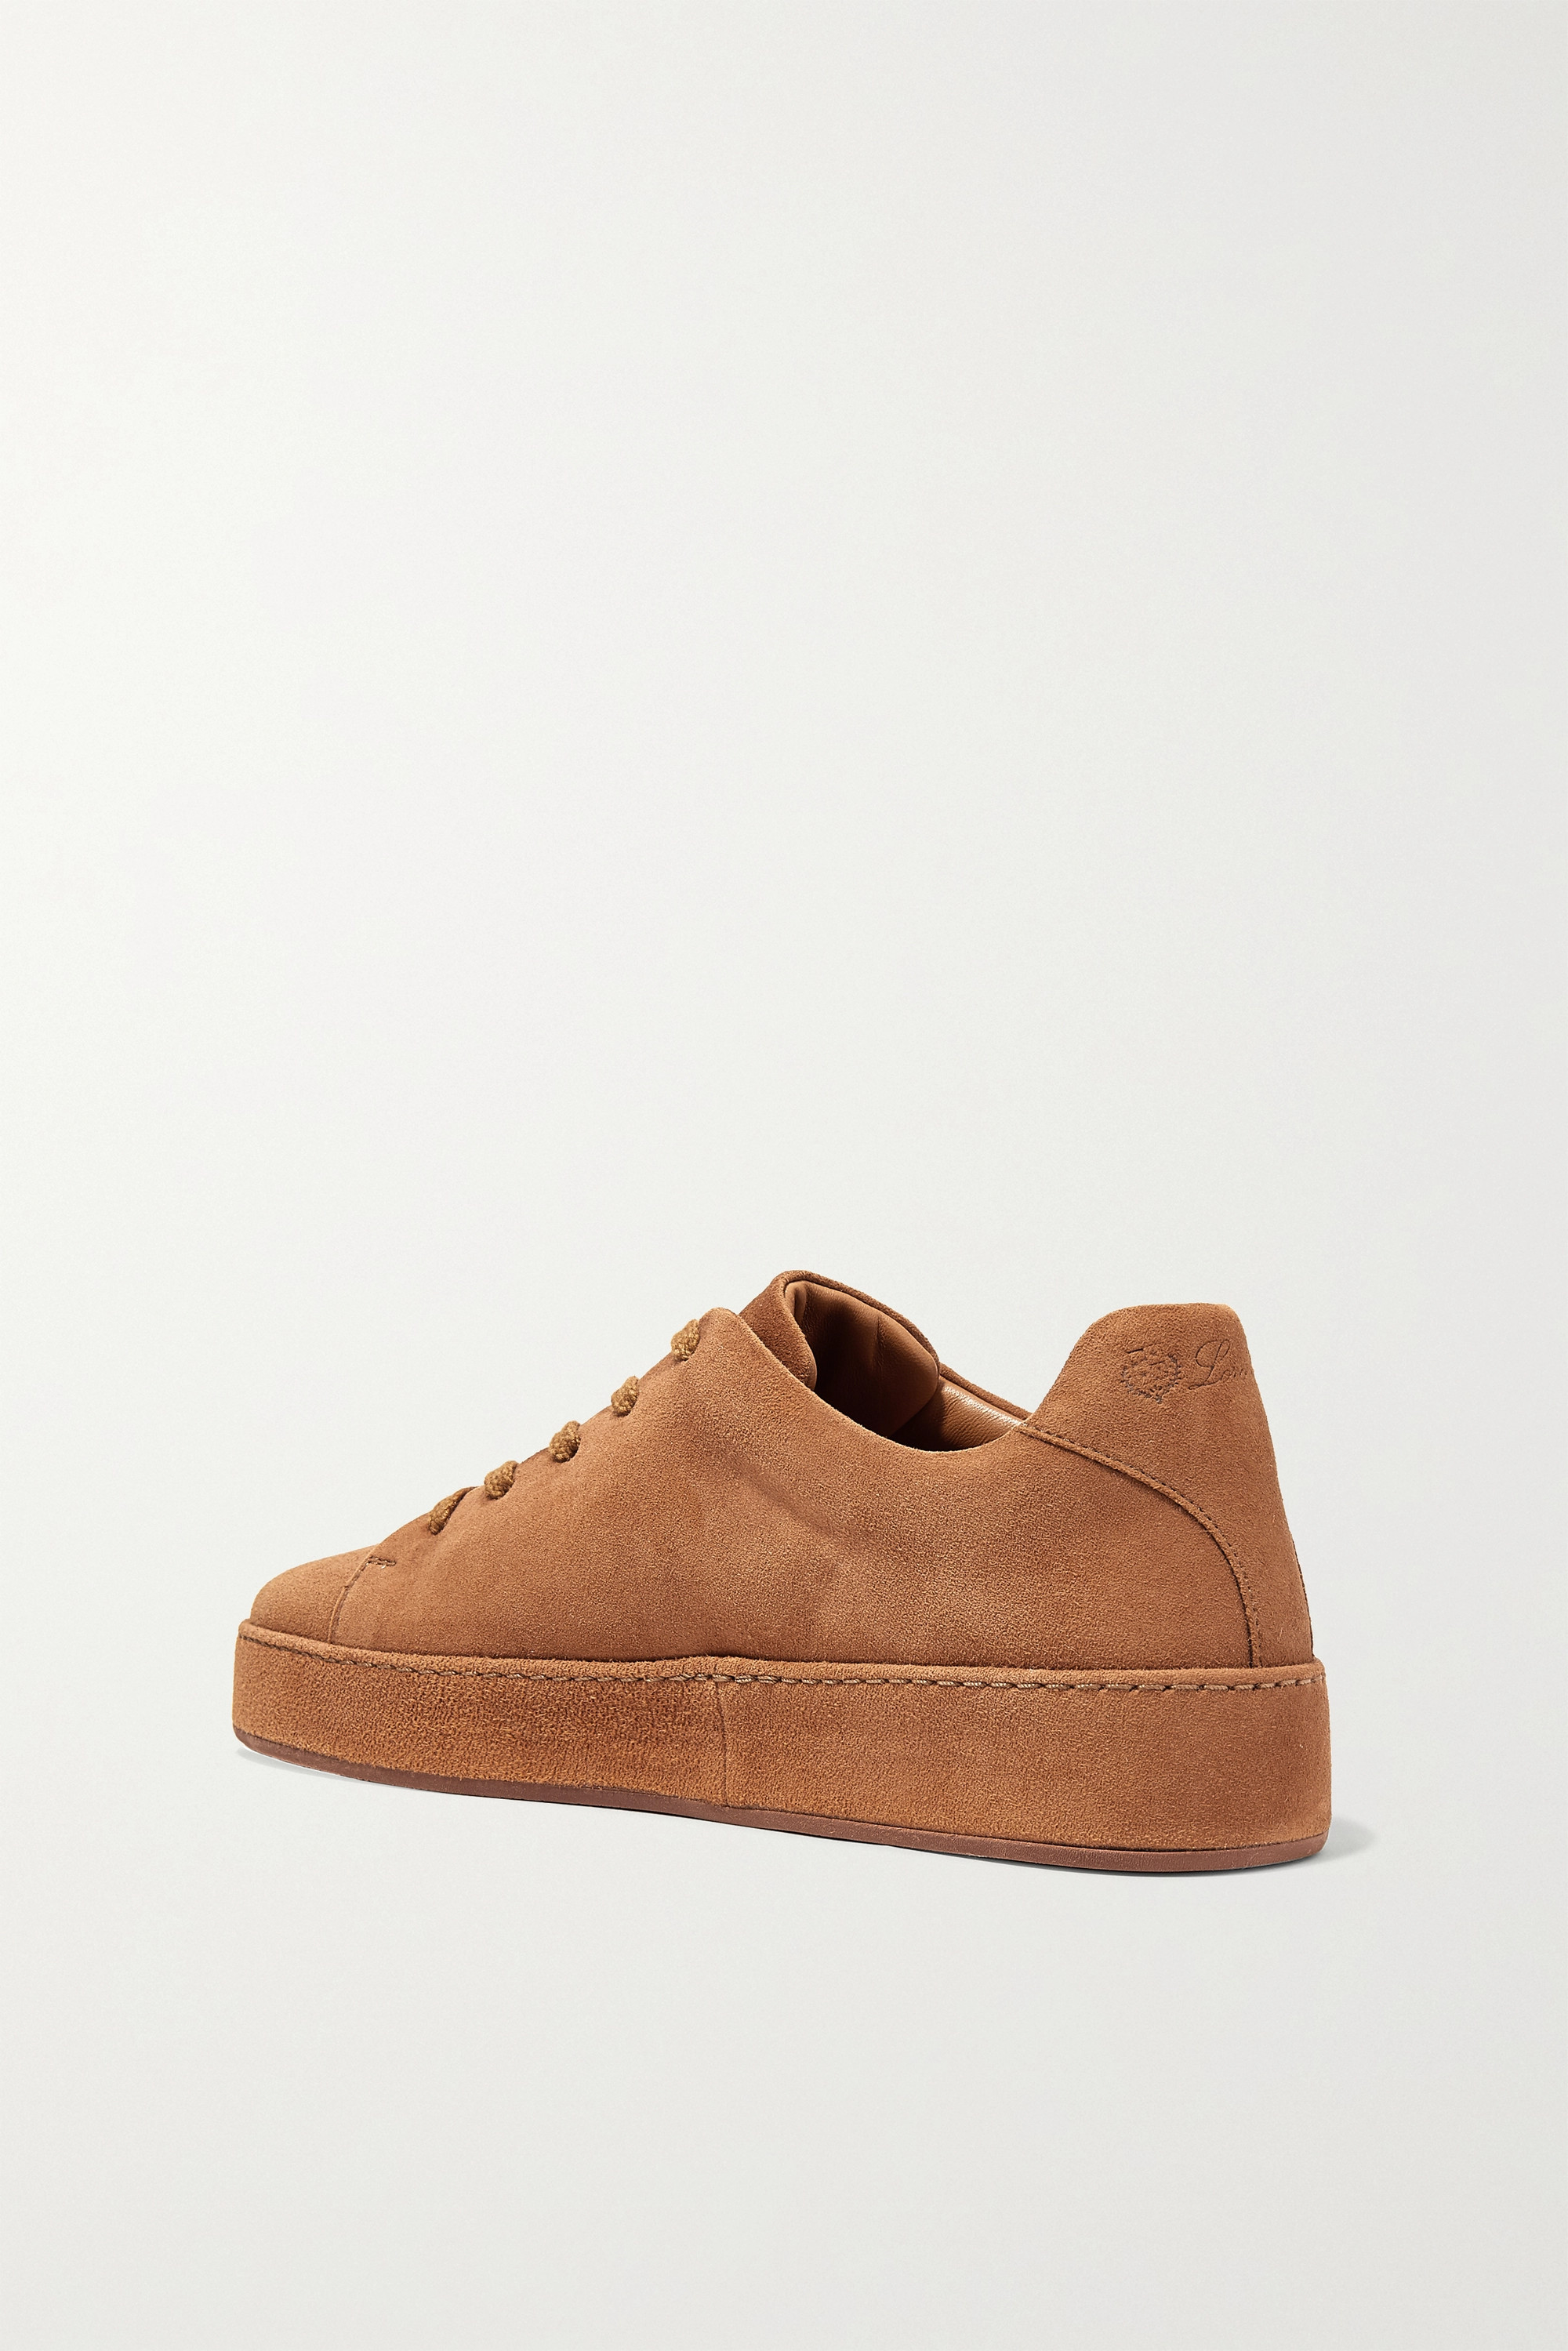 Loro Piana Nuages suede sneakers